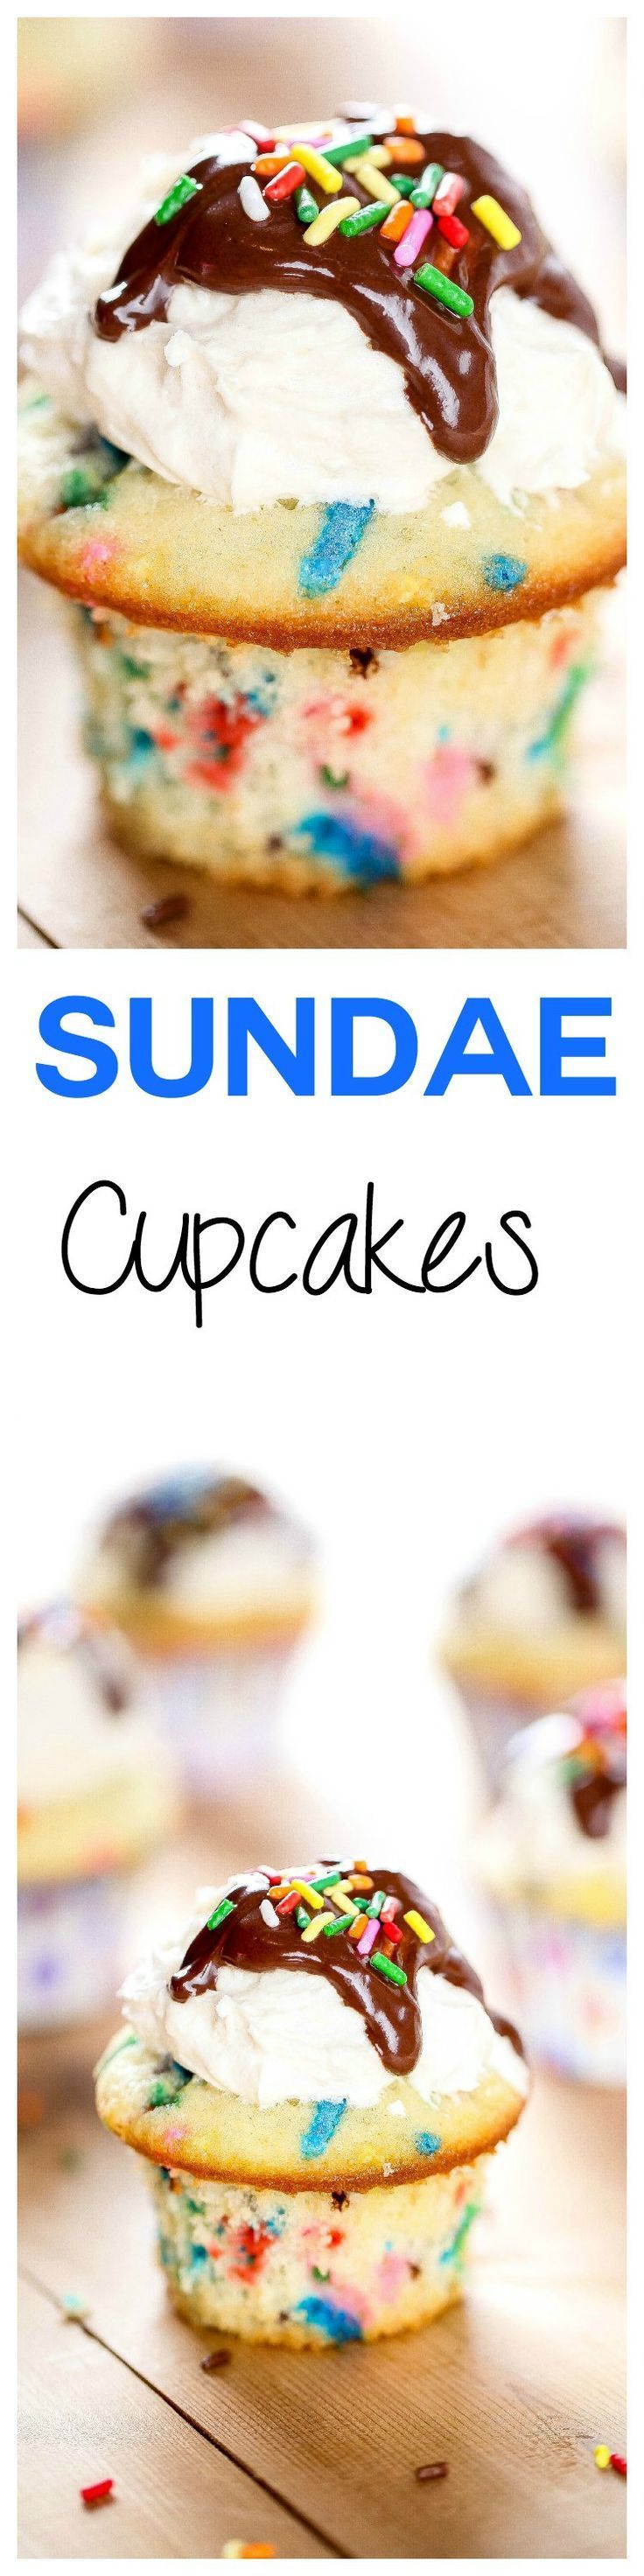 Ice Cream Sundae Cupcakes: Moist vanilla cupcakes topped with sweet buttercream and rich chocolate. They look AND taste just like cake batter ice cream. The cutest birthday idea ever!